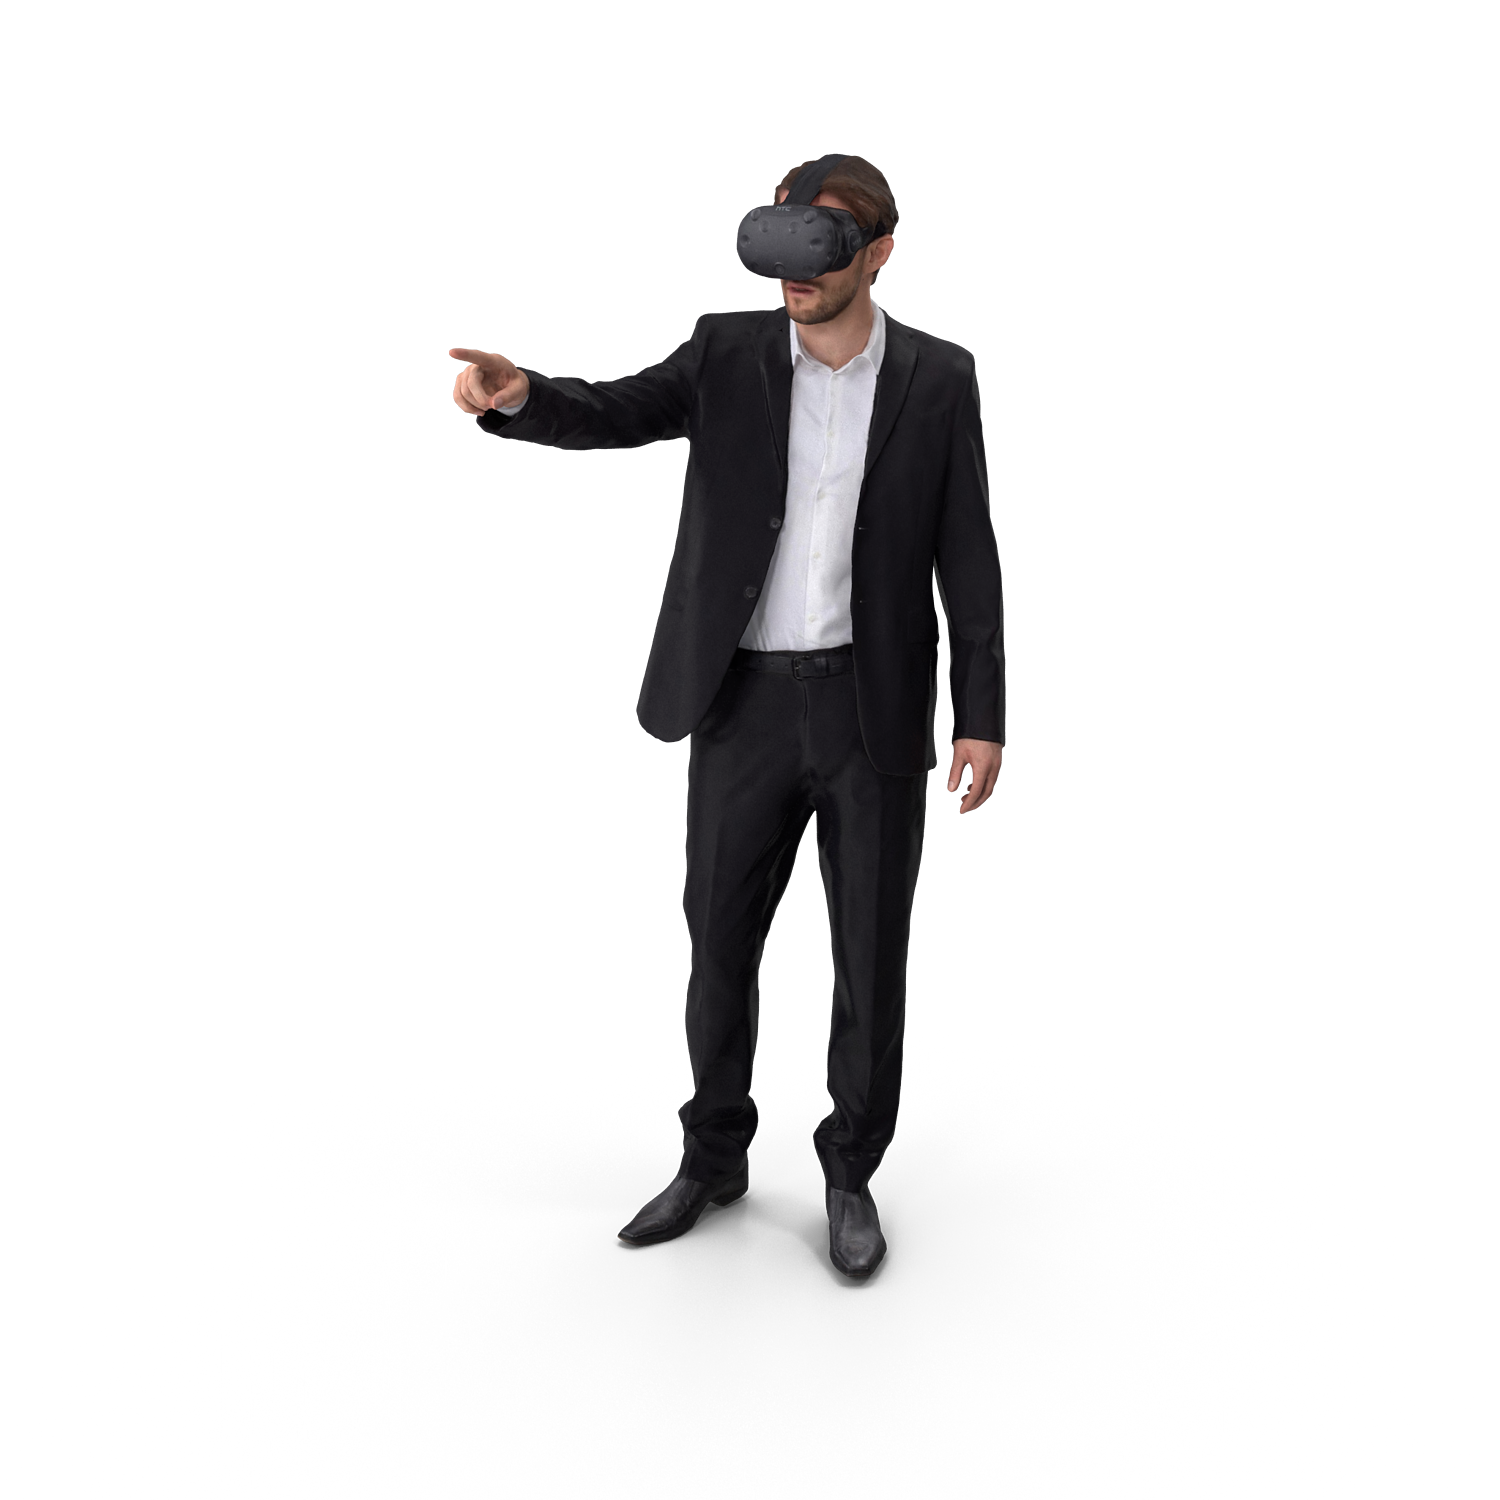 Man Posed With VR.H02.2k